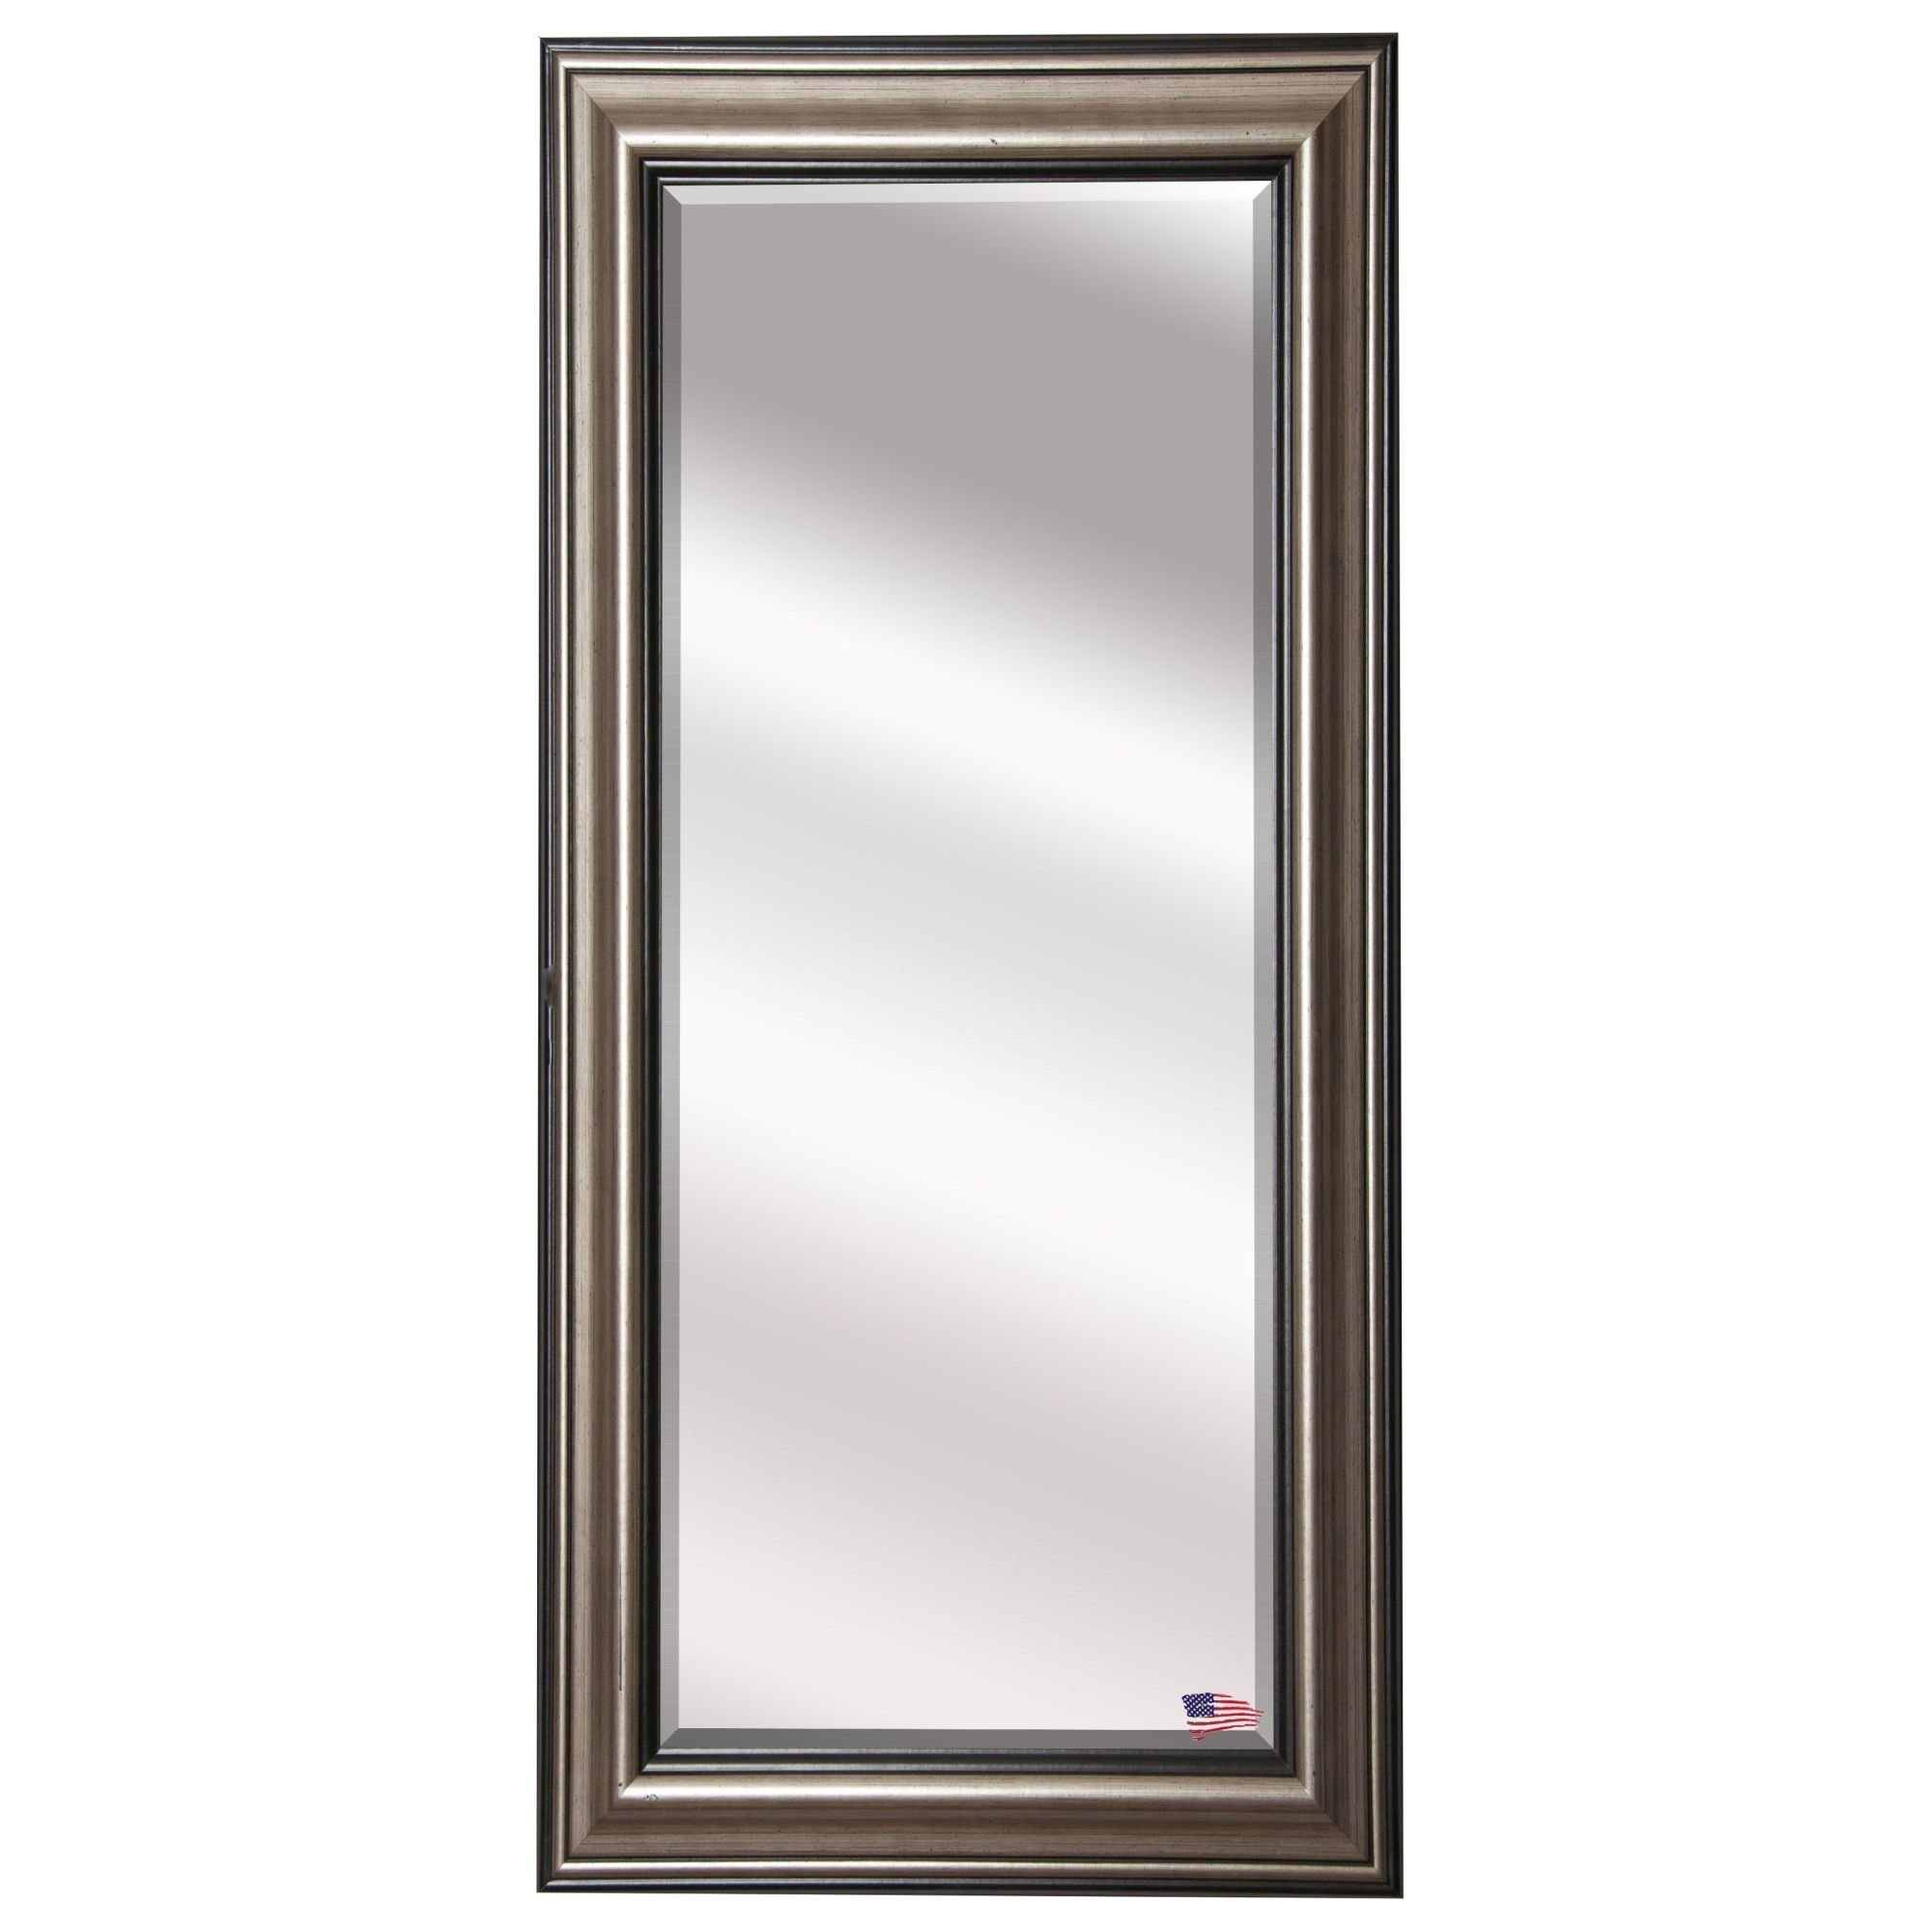 World Menagerie Divine Edge Beveled Wall Mirror Reviews Wayfair Inside Bevel Edged Mirror (Image 15 of 15)